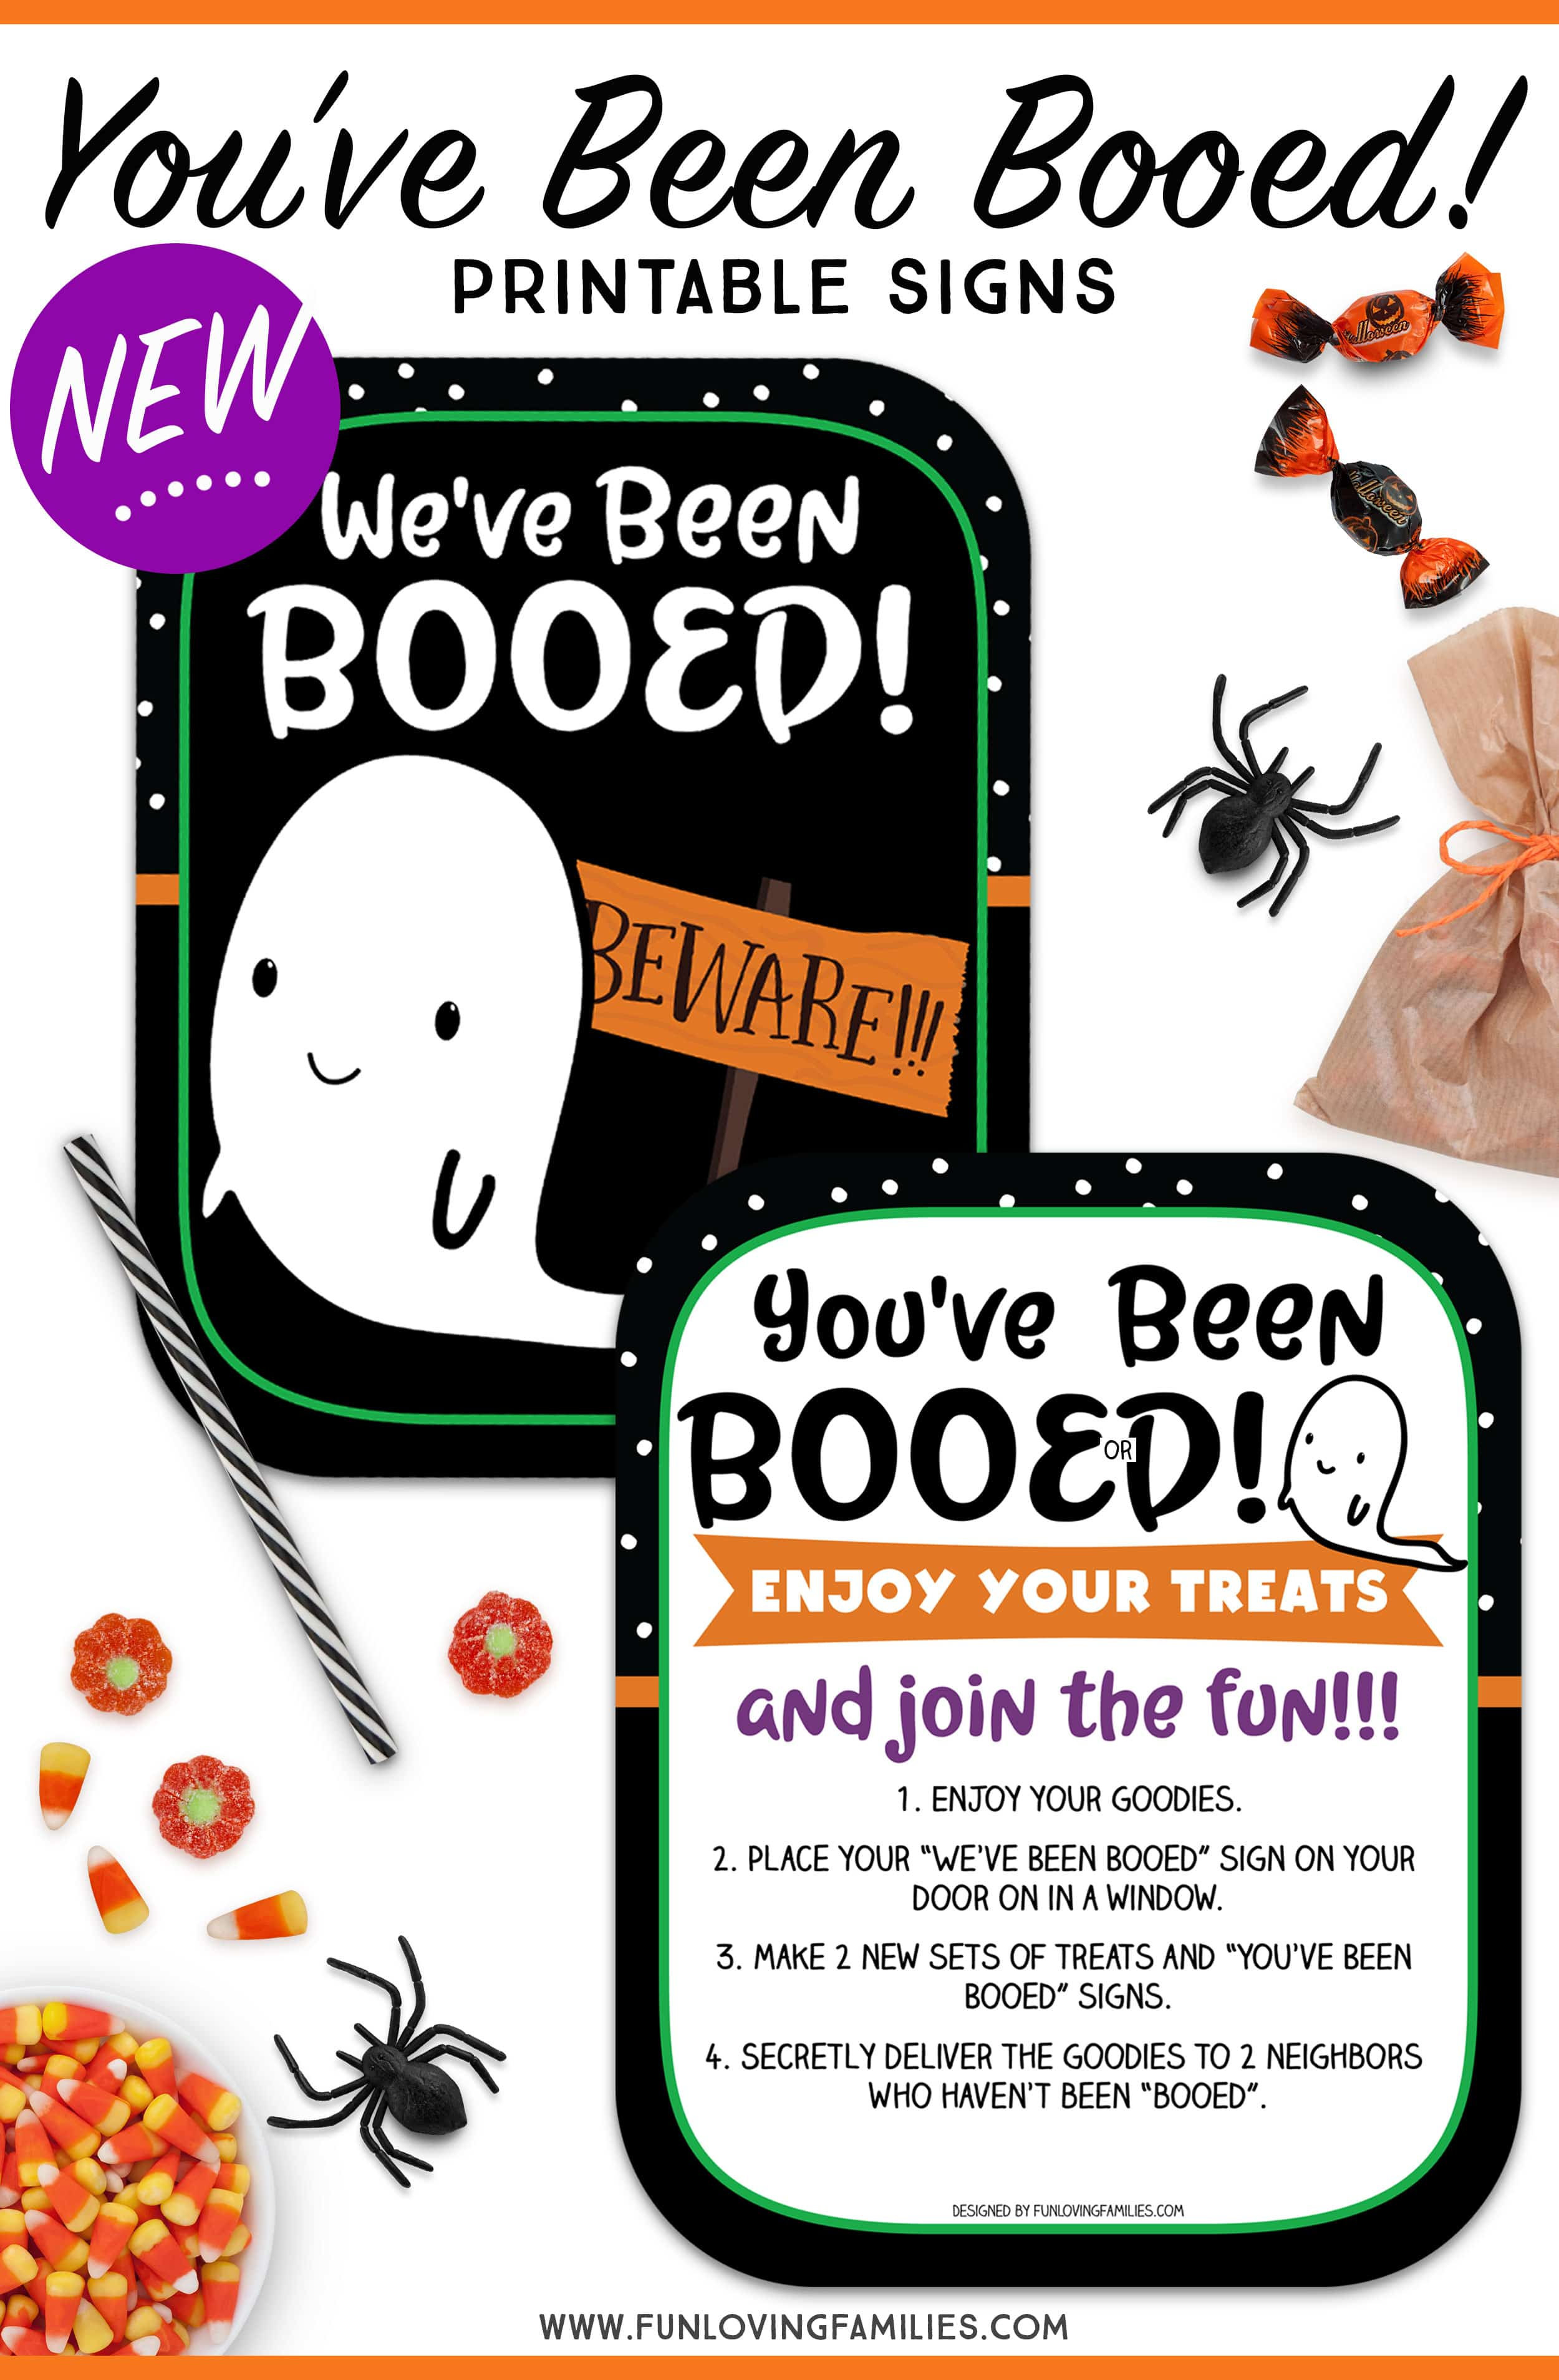 You've Been Booed free printables and ideas. We love playing the boo game in our neighborhood. Find out how and grab the free printables. More options on the blog! #halloweengame #youvebeenbooed #boogame #cute #ghost #ghostie #halloweenprintables